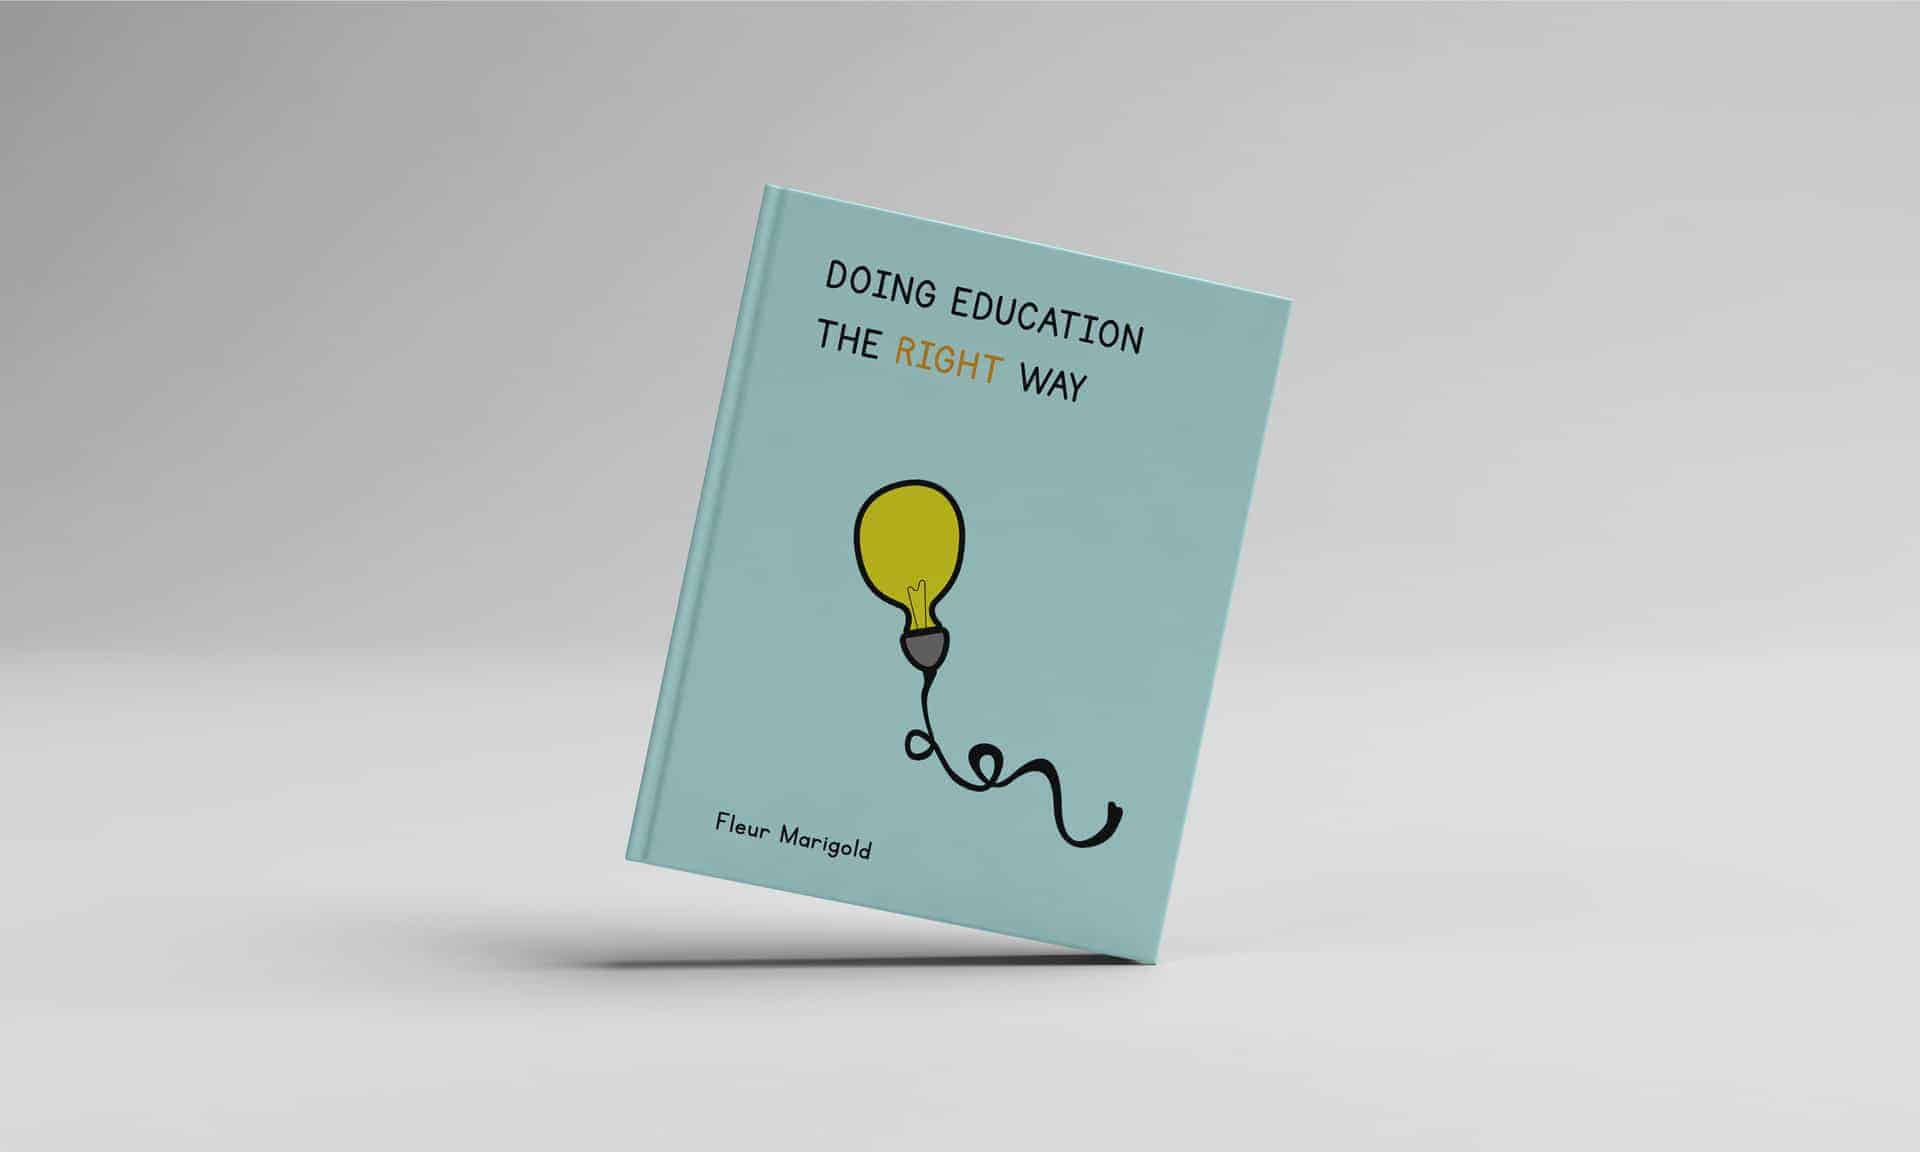 Doing Education The Right Way - Book Cover